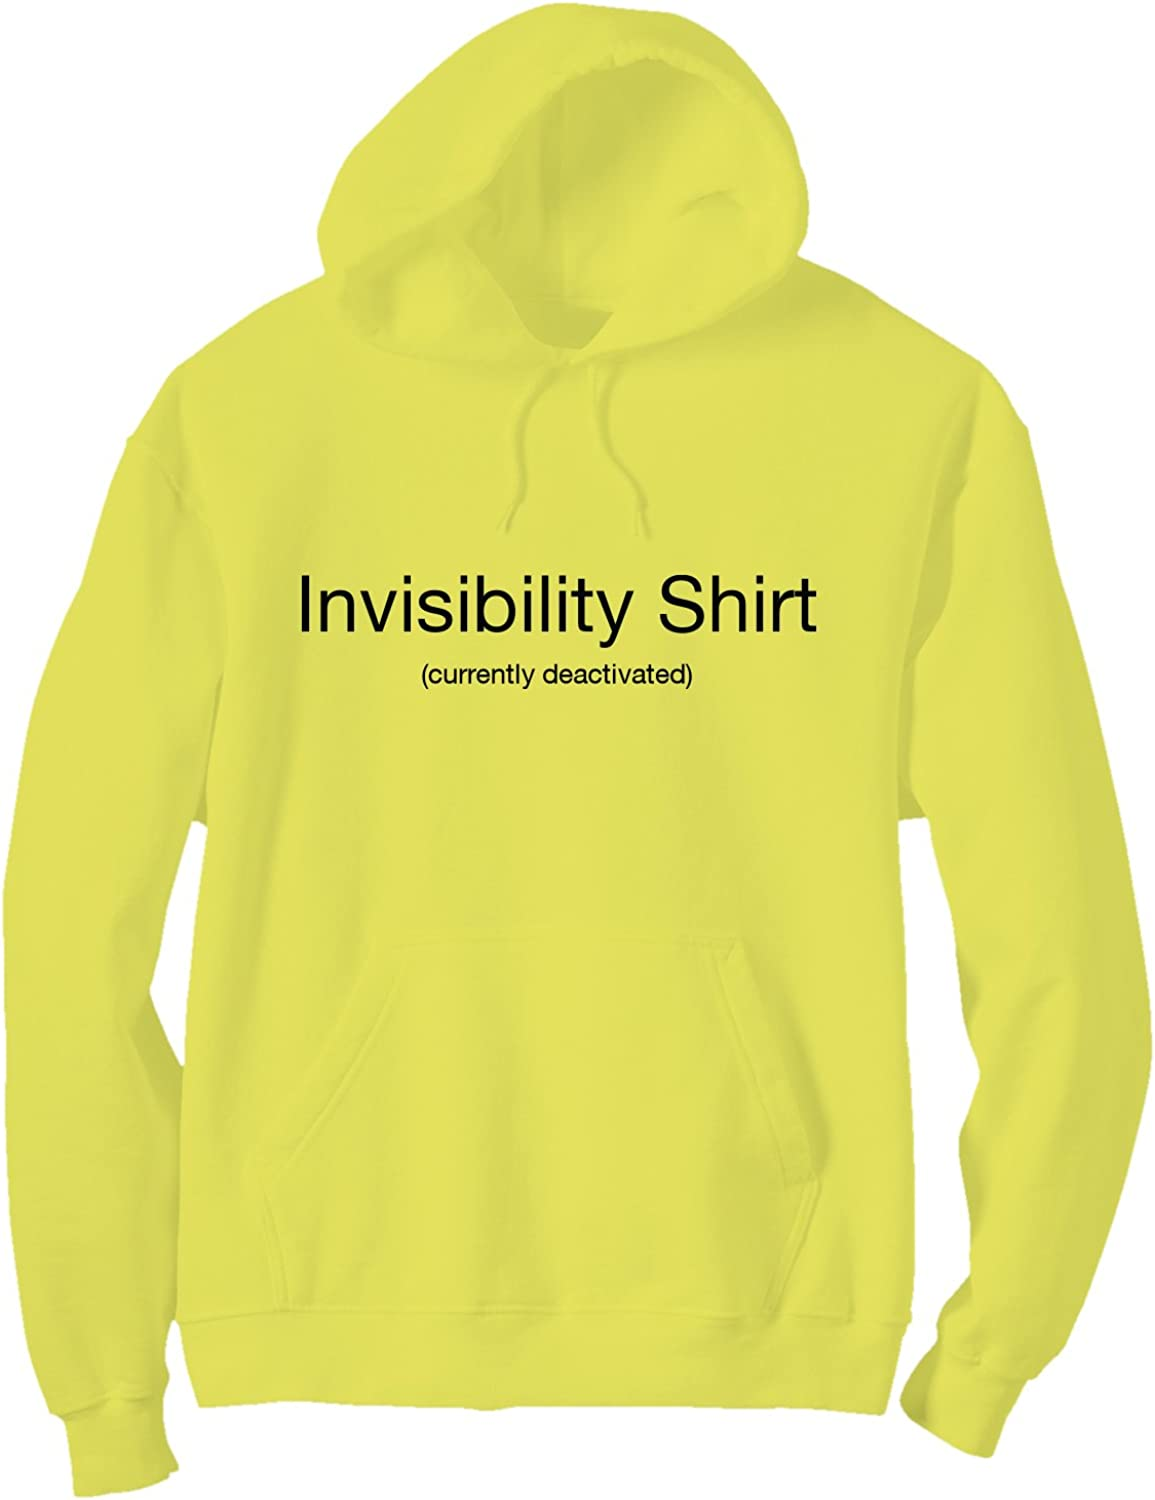 X-Large Invisibility Shirt Bright Neon Yellow Adult Pullover Hoodie